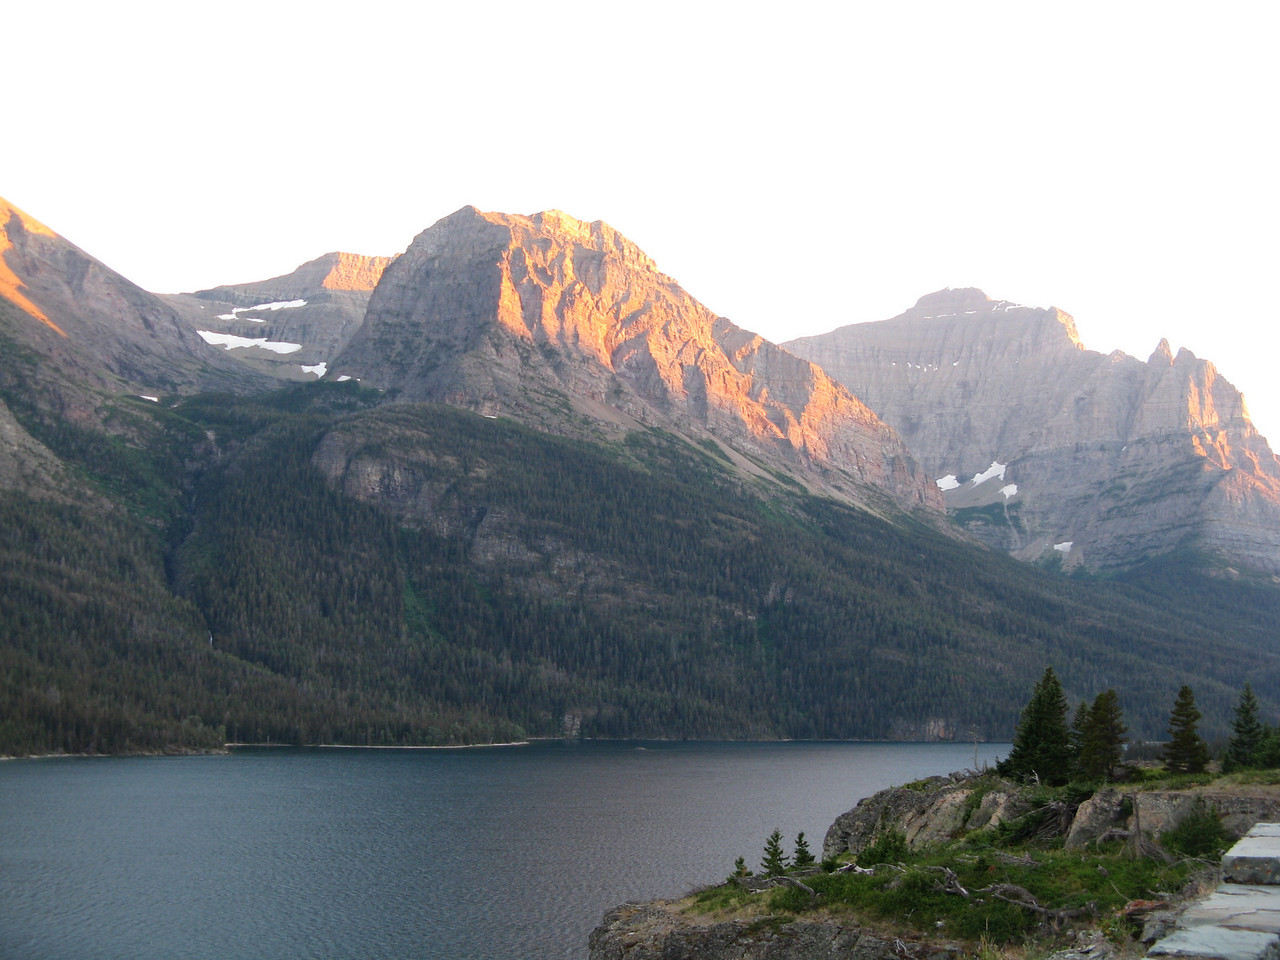 Sunsetting on the mountains across Saint Mary Lake from the Going-to-the-Sun Road.